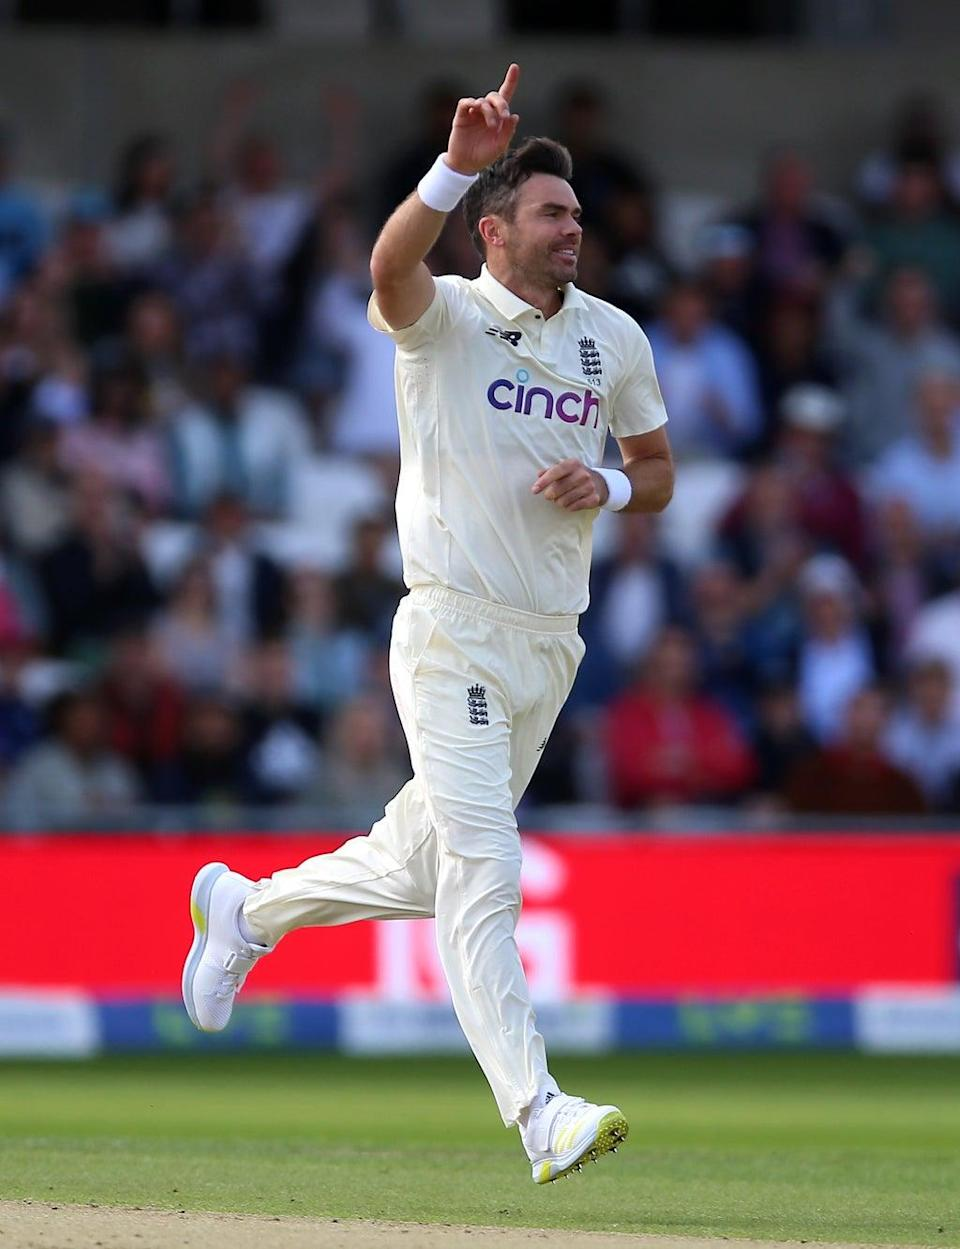 England's James Anderson celebrates the wicket of India's Cheteshwar Pujara (Nigel French/PA) (PA Wire)